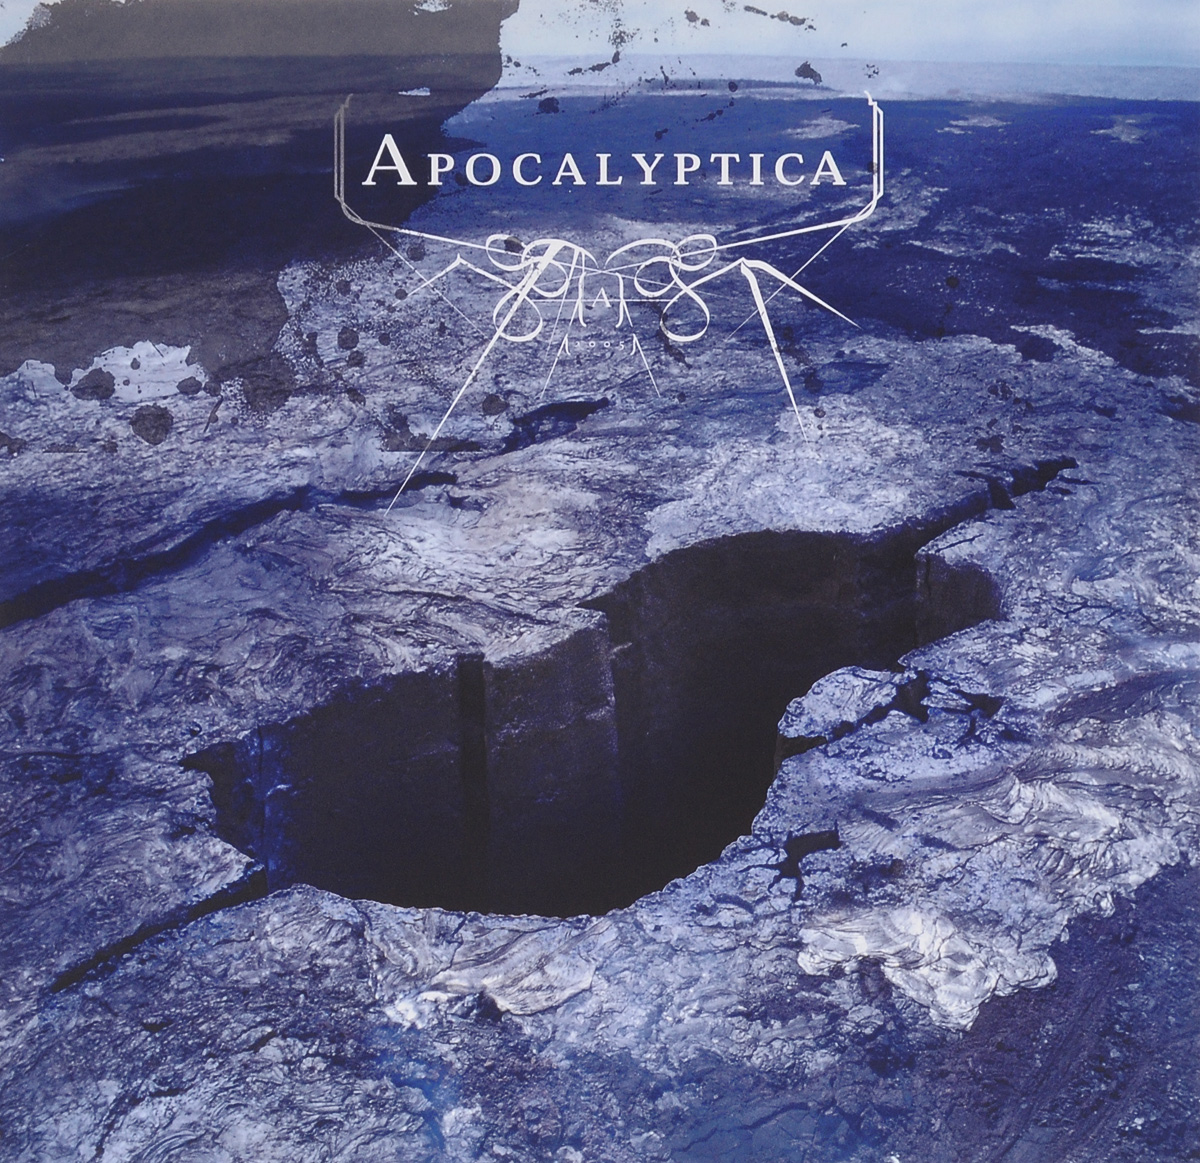 Apocalyptica Apocalyptica. Apocalyptica (2 LP + CD) shinedown shinedown threat to survival lp cd